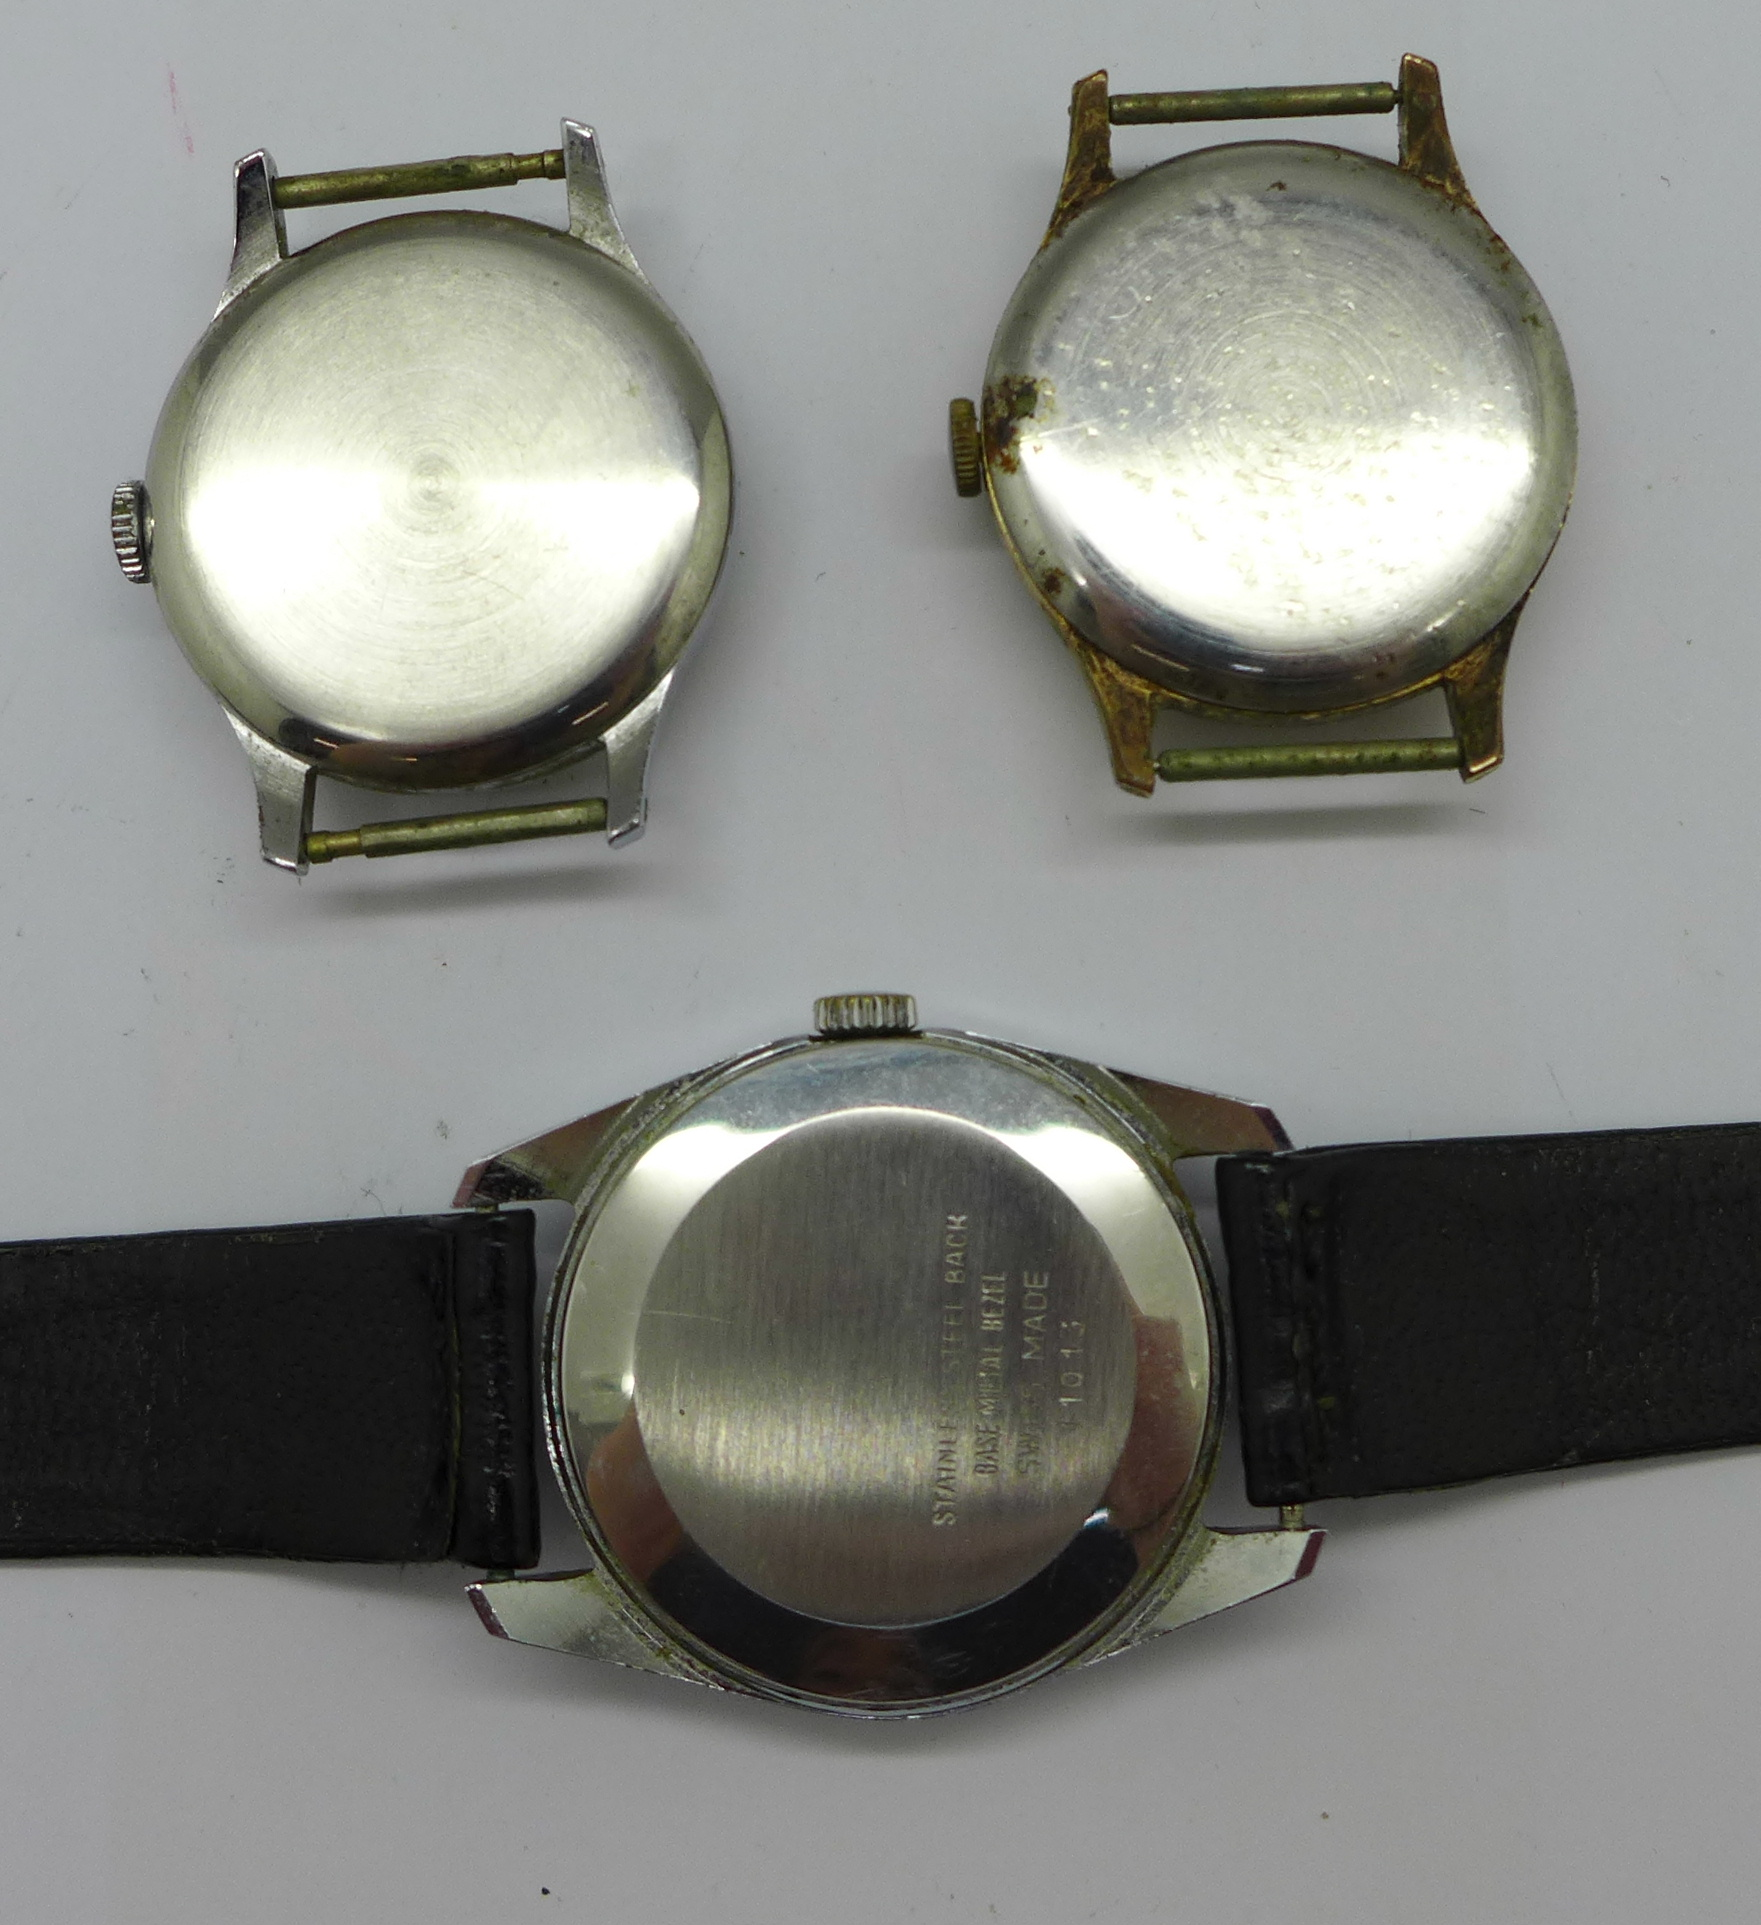 A Smiths Astral, Smiths Astrolon and one other Smiths wristwatch with De Luxe movement - Image 5 of 5